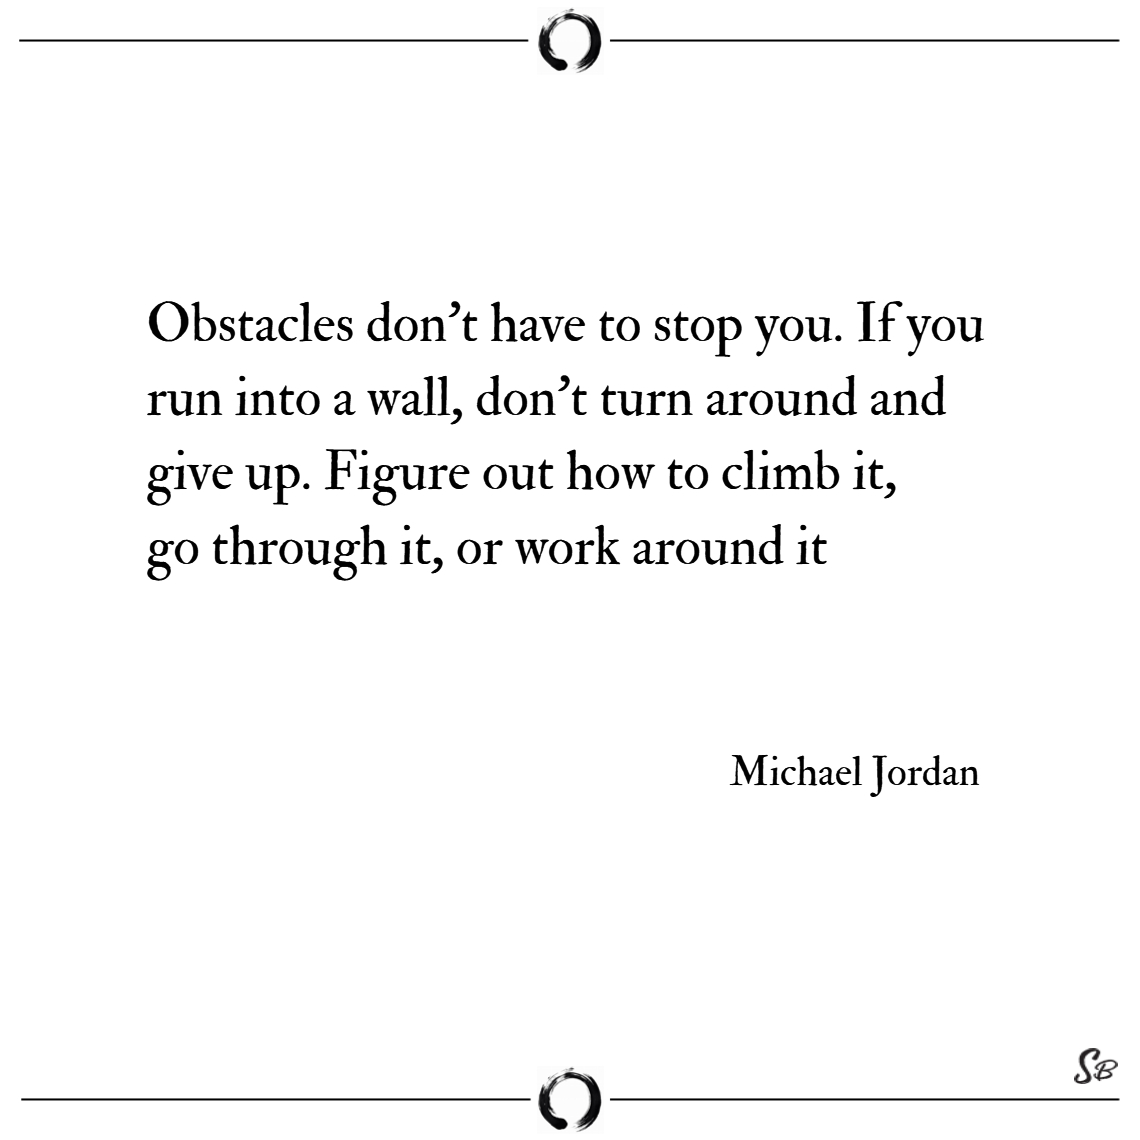 Obstacles don't have to stop you. if you run into